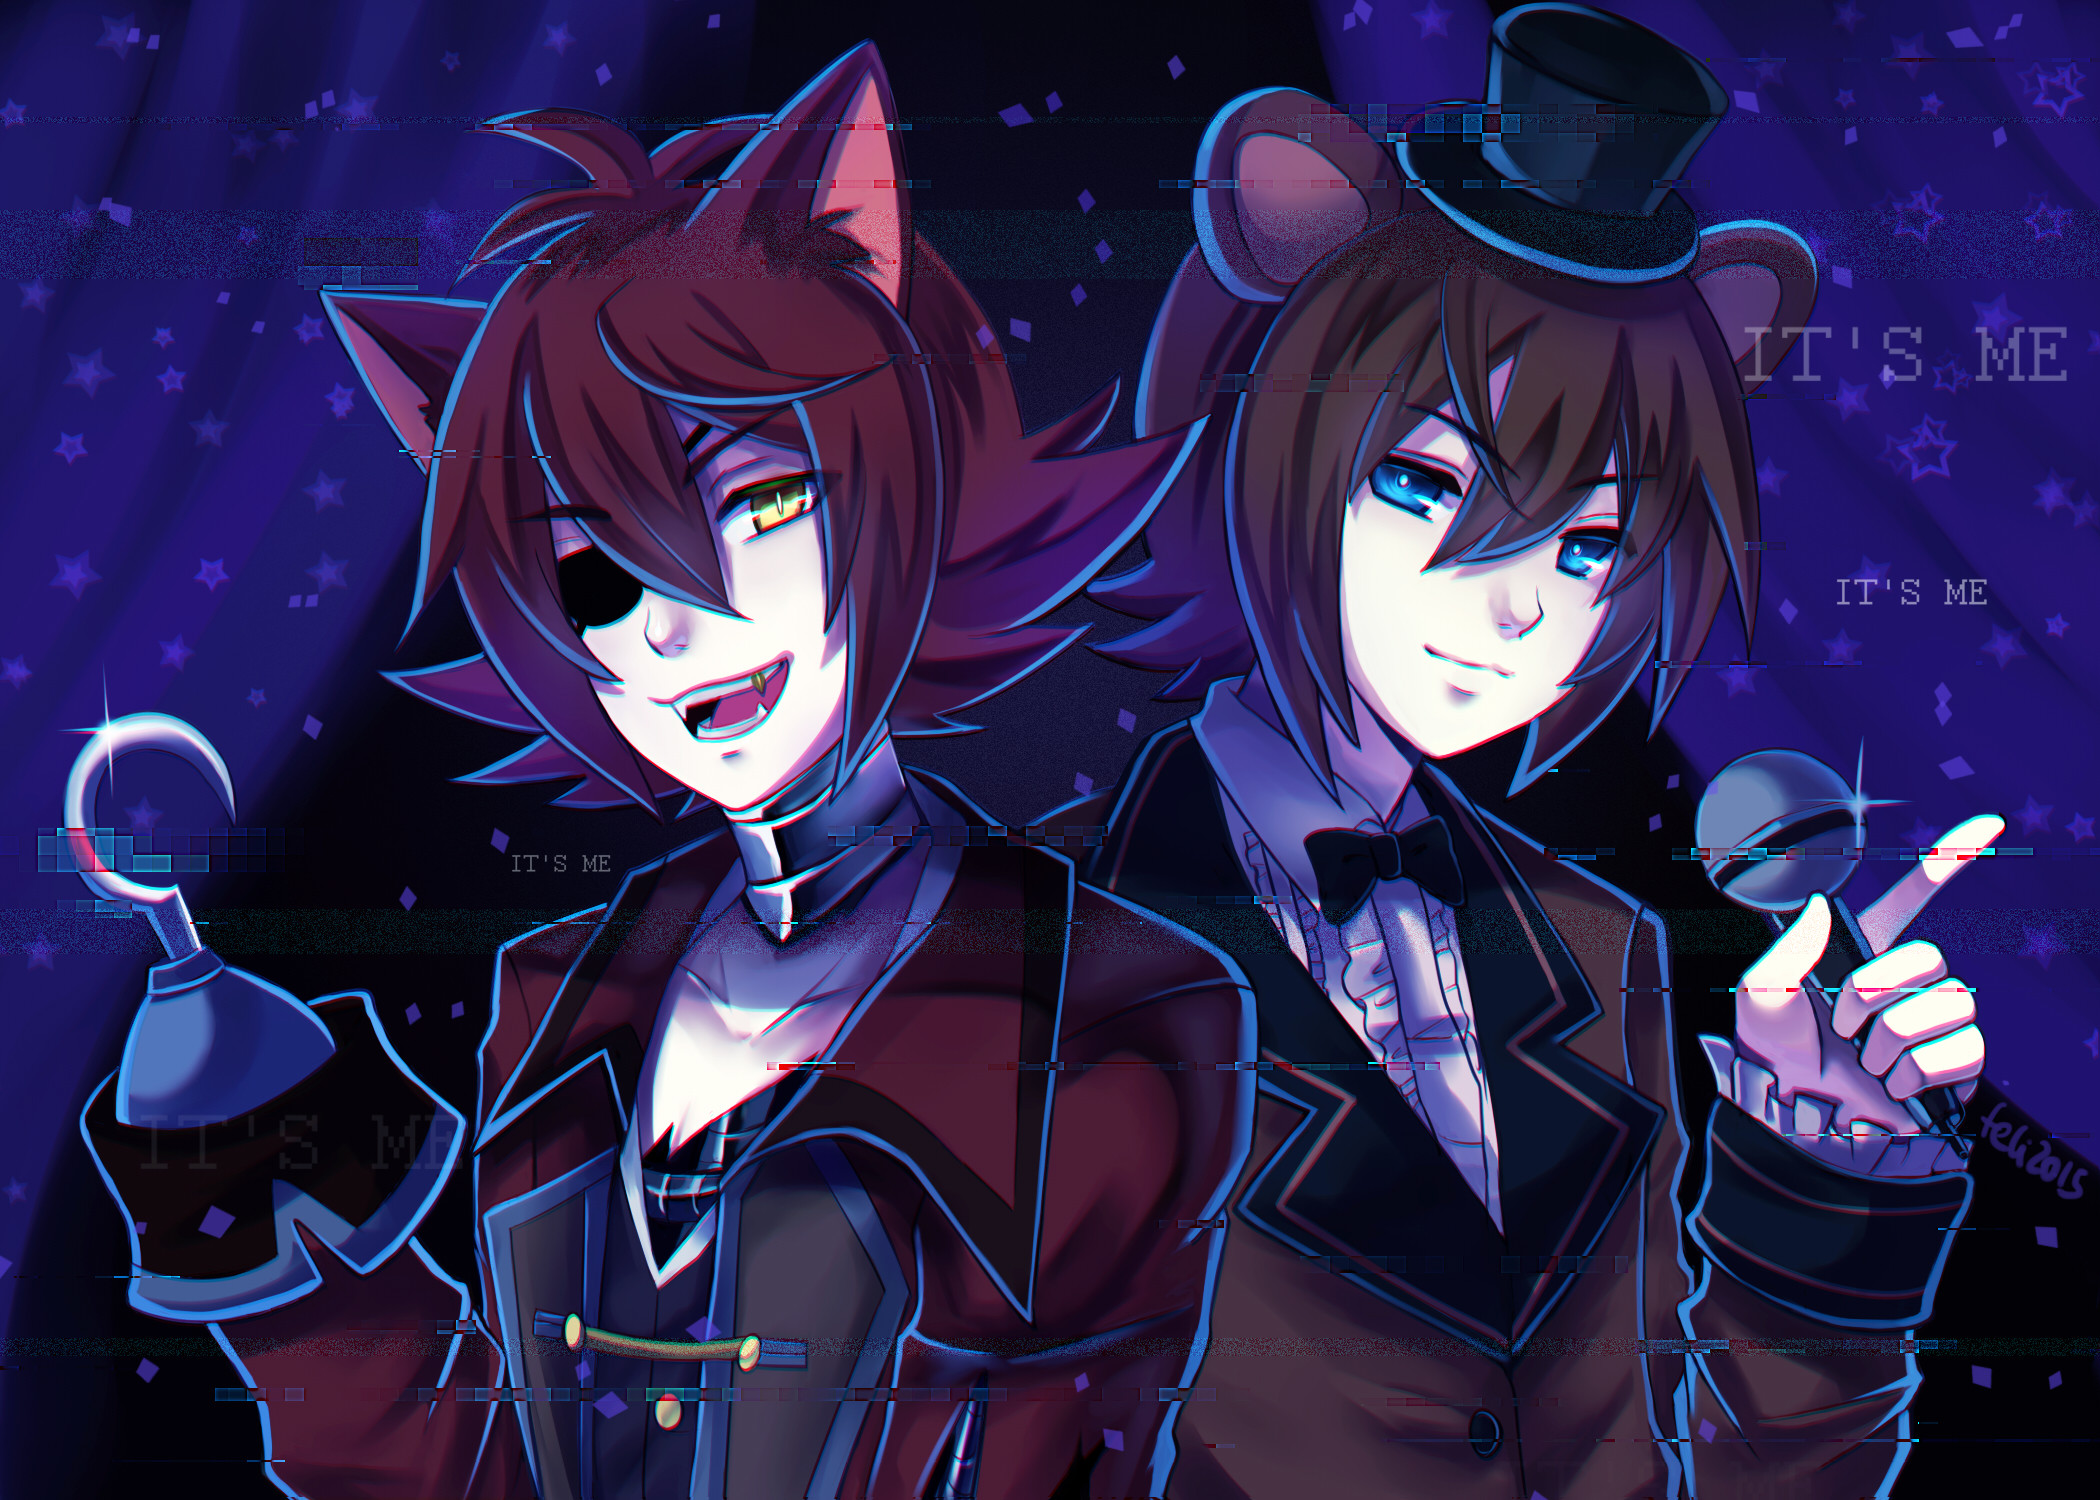 Five Nights at Freddy's · download Five Nights at Freddy's image